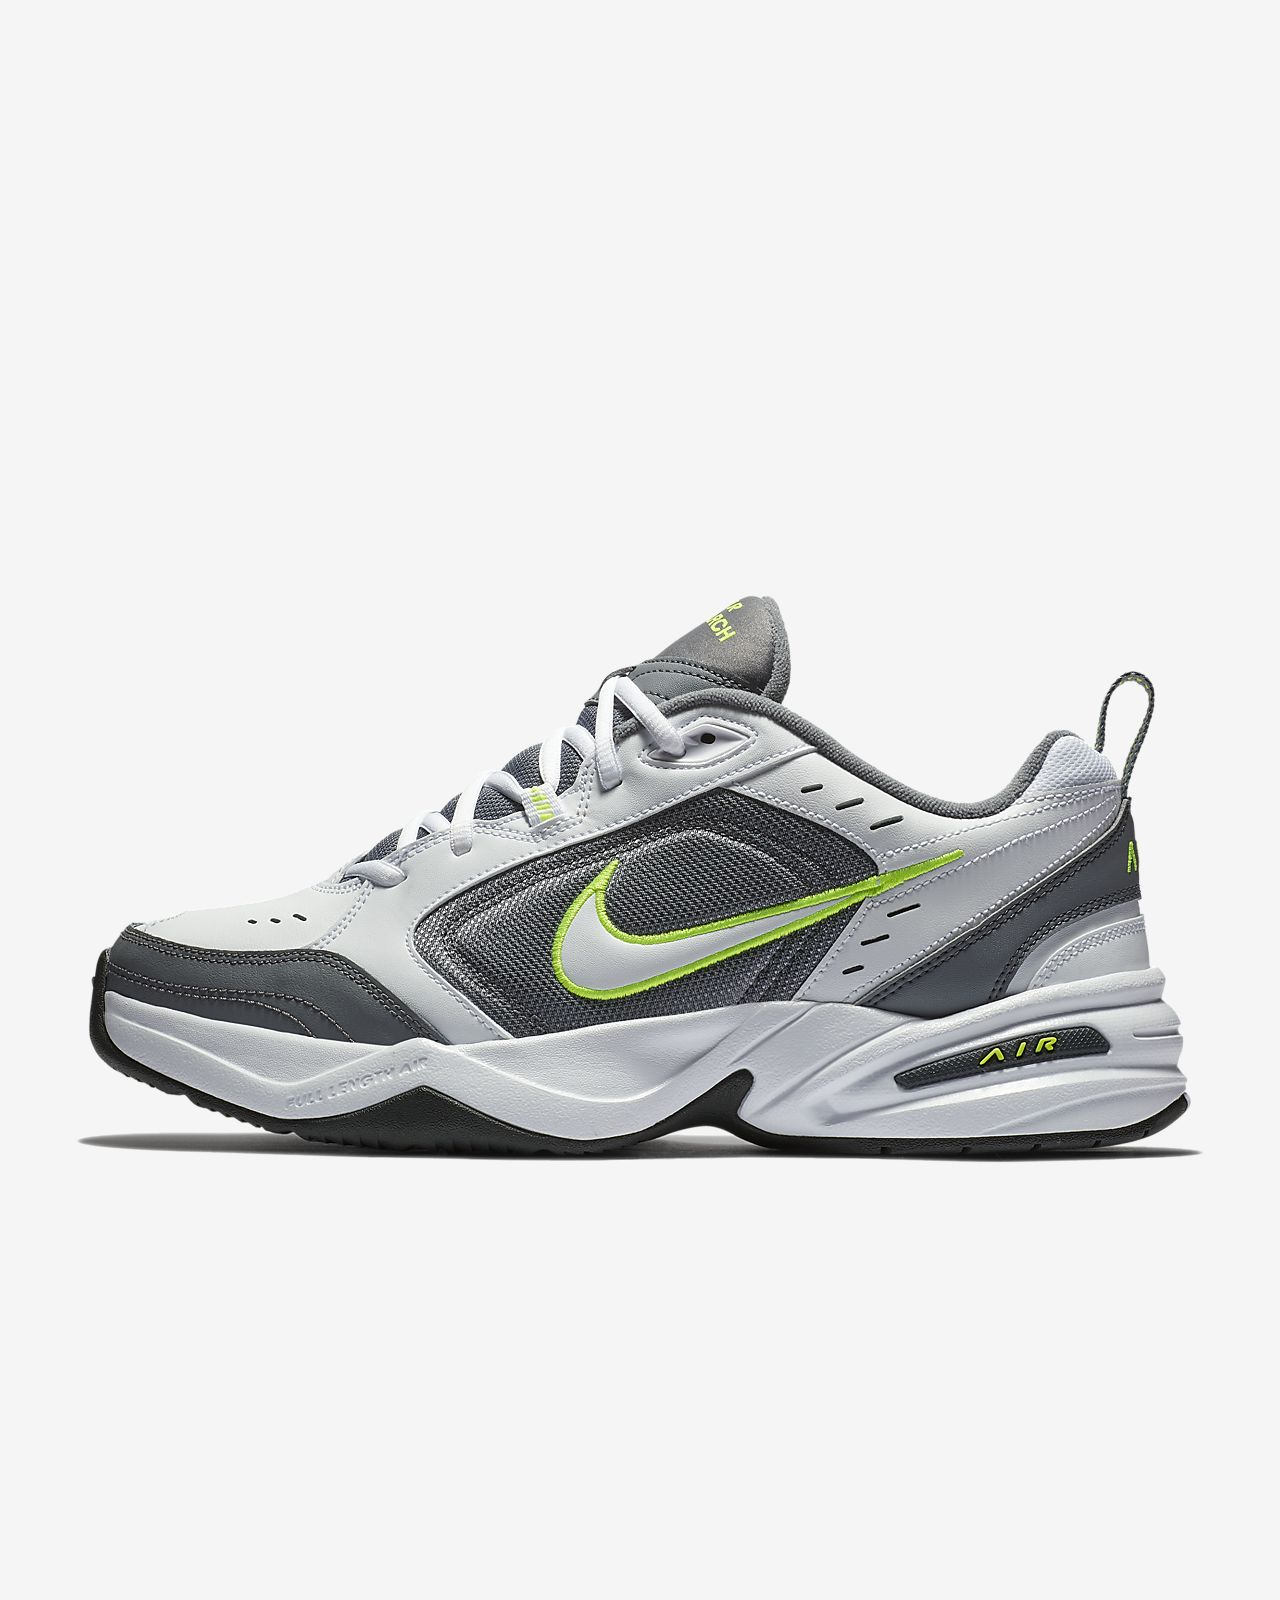 72b6a639094e Nike Air Monarch IV Lifestyle Gym Shoe. Nike.com